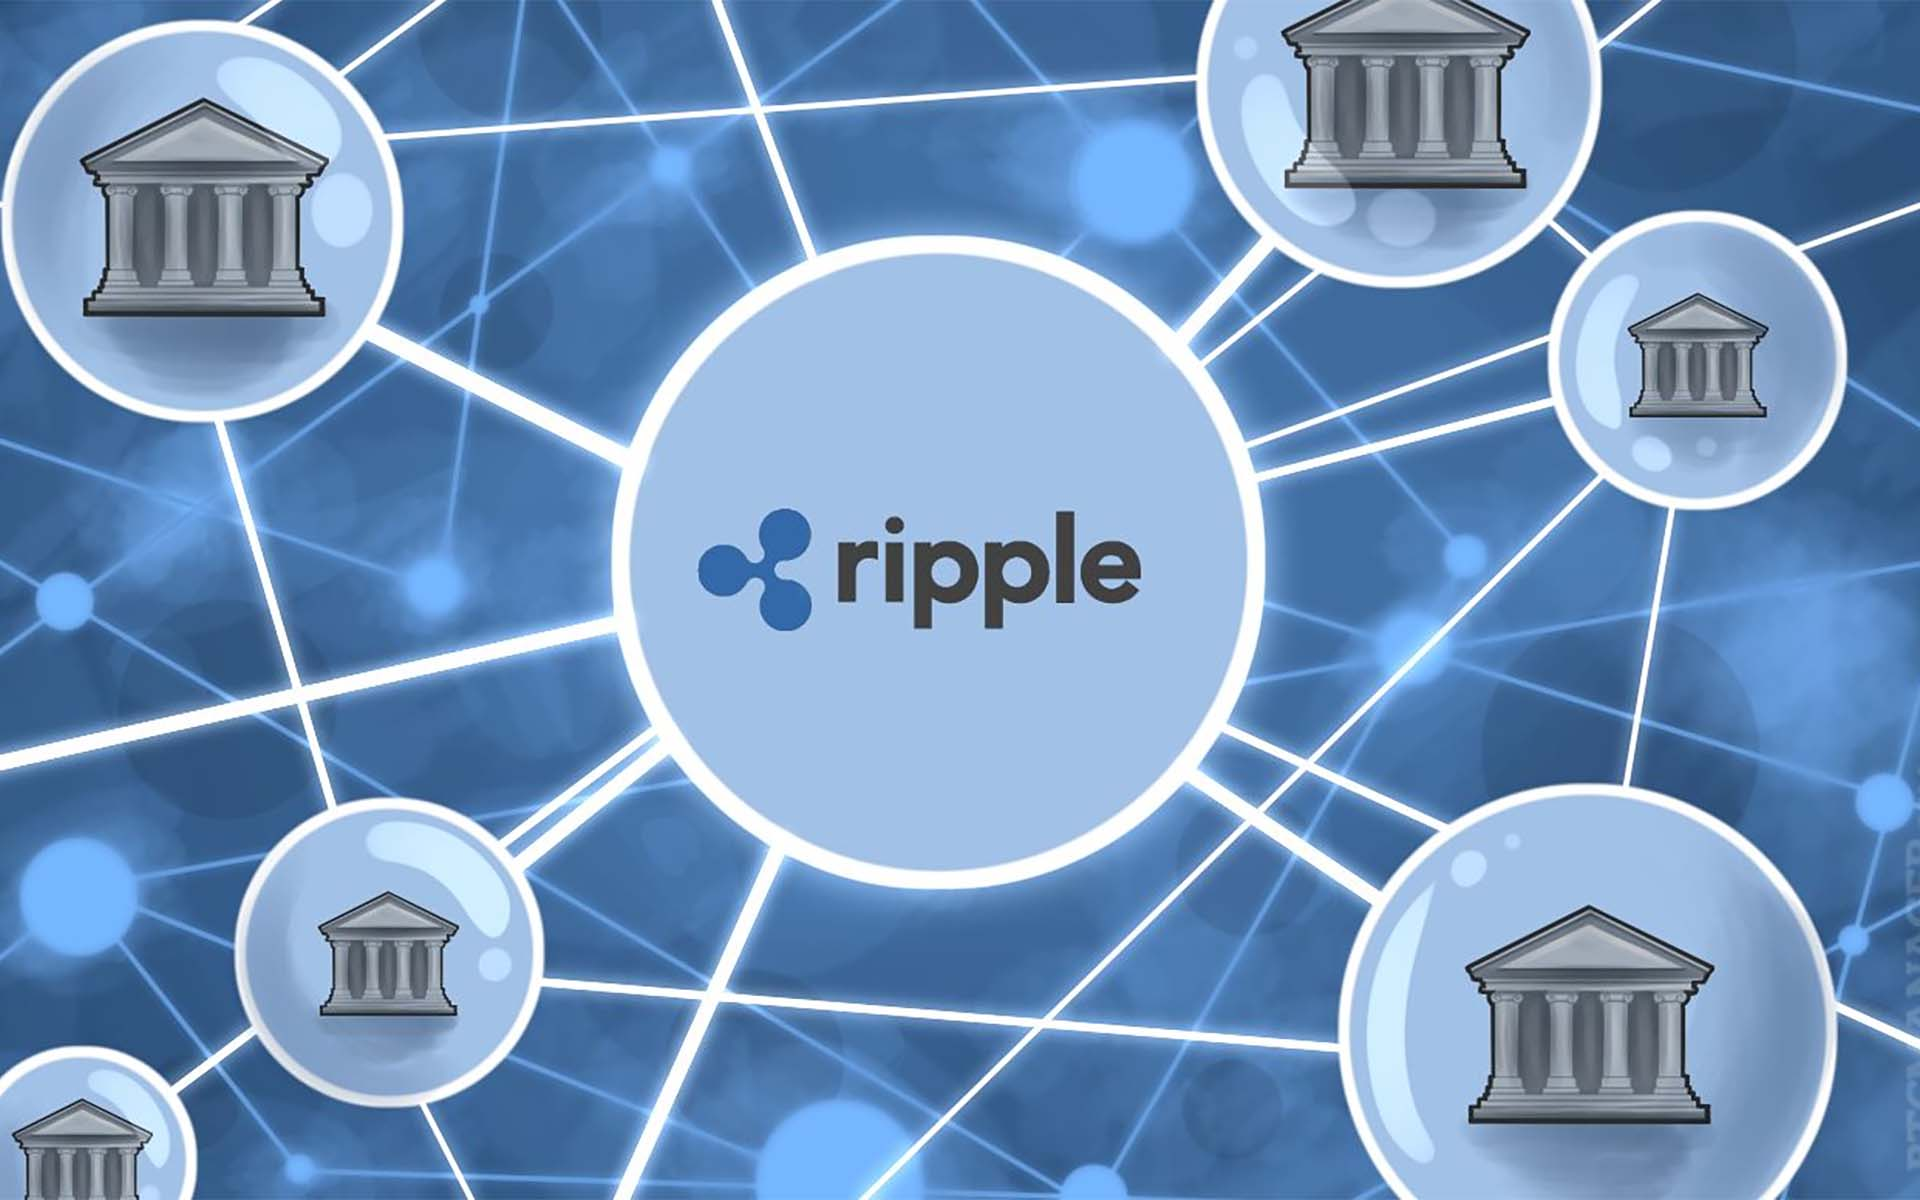 Ripple's array of partners continues to expand as Coinone joins RippleNet.